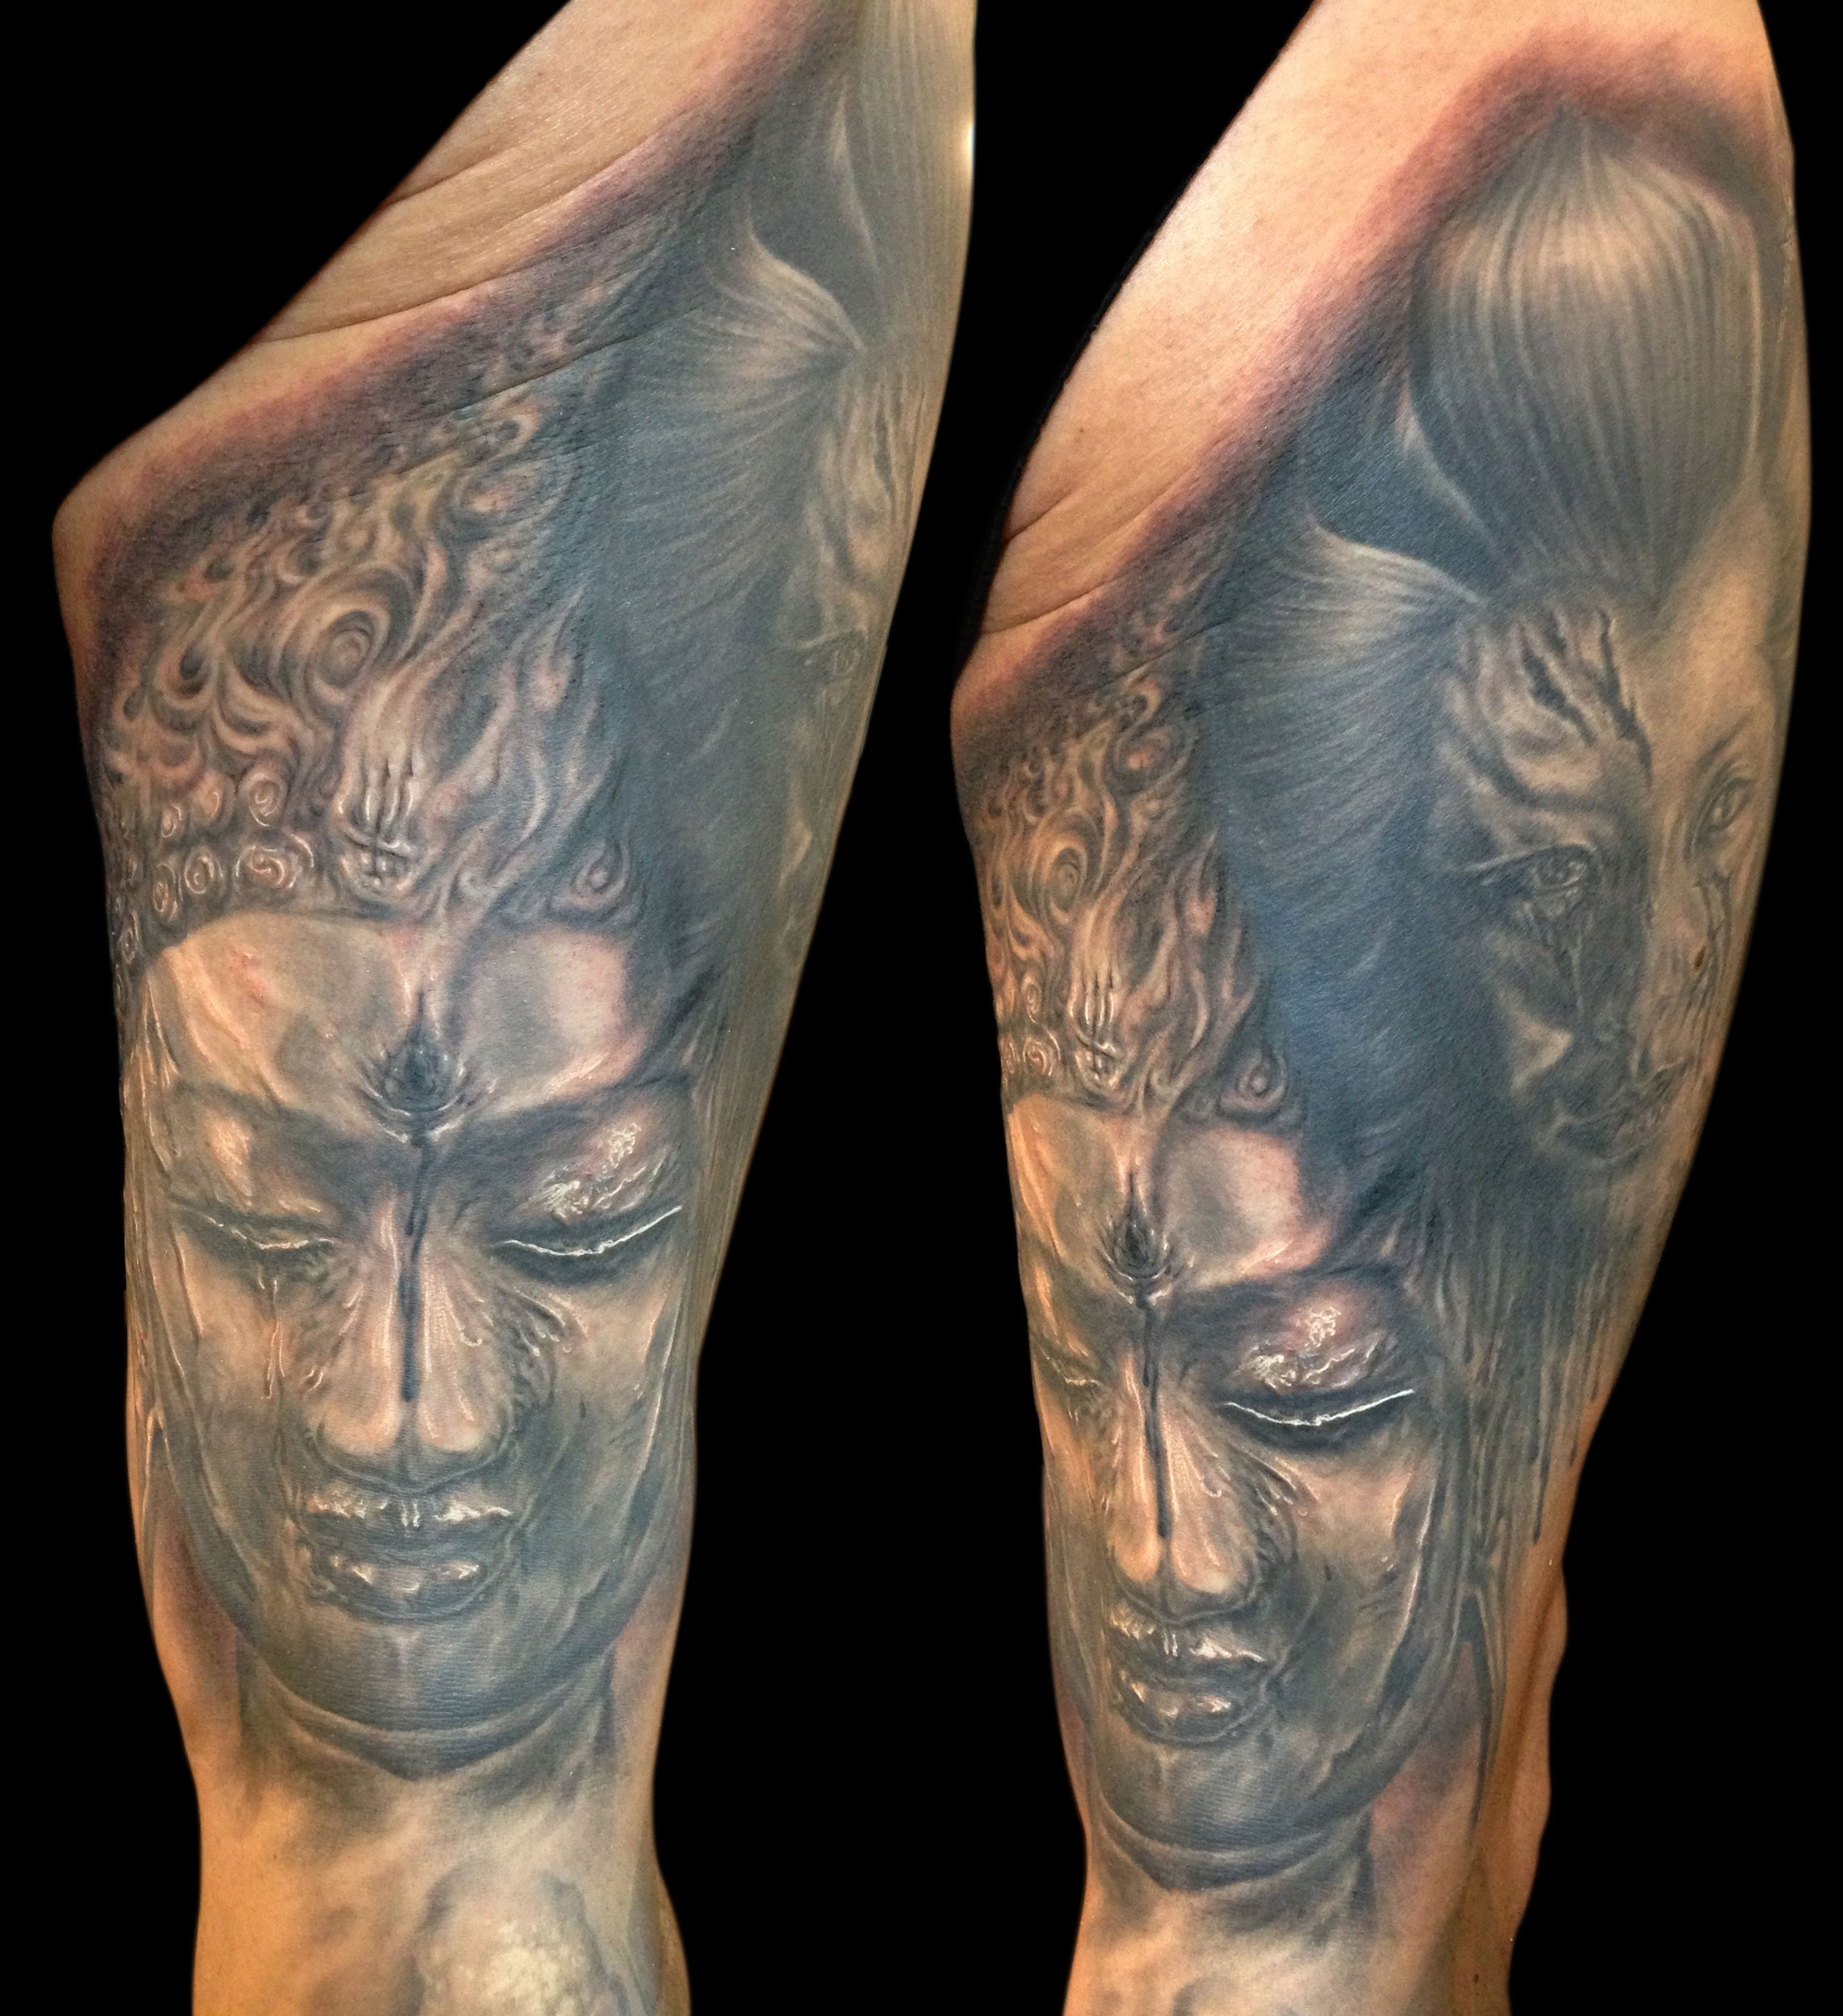 Back and Grey Gory Buddha and Geisha Horror Portrait Tattoo on thigh, (part fresh part healed) Tattoo Ink Explosion, Mönchengladbach Tattoo Convention, Germany